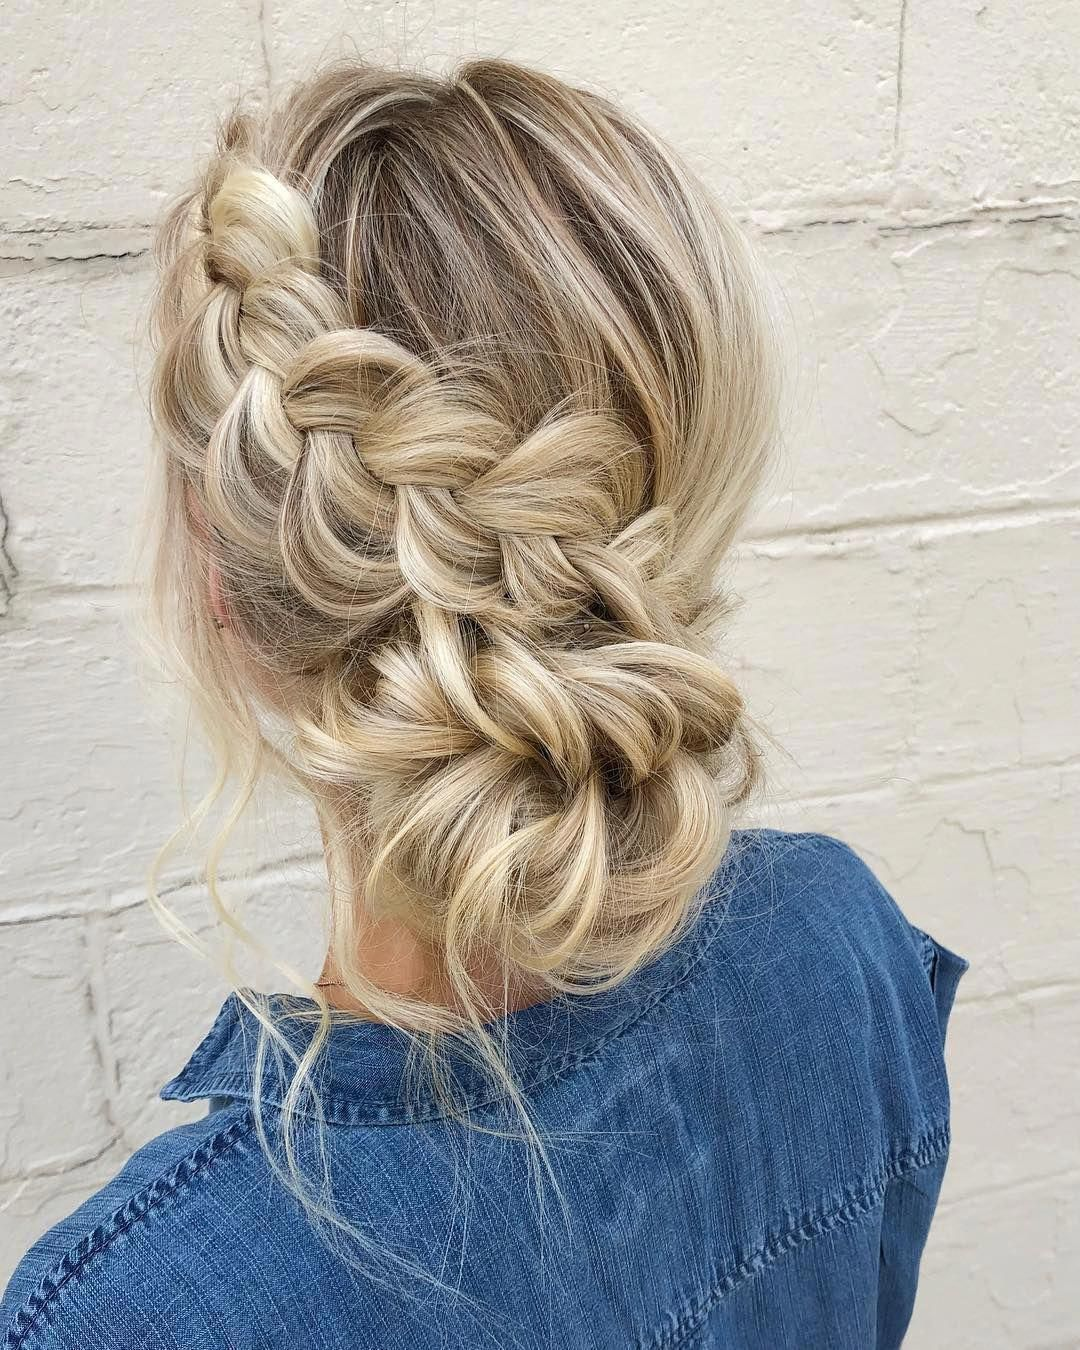 "Half up half down hairstyle <a class=""pintag"" href=""/explore/weddinghair/"" title=""#weddinghair explore Pinterest"">#weddinghair</a> <a class=""pintag"" href=""/explore/hairstyle/"" title=""#hairstyle explore Pinterest"">#hairstyle</a> <a class=""pintag"" href=""/explore/halfup/"" title=""#halfup explore Pinterest"">#halfup</a> <a class=""pintag"" href=""/explore/wedding/"" title=""#wedding explore Pinterest"">#wedding</a> <a class=""pintag"" href=""/explore/hairdos/"" title=""#hairdos explore Pinterest"">#hairdos</a> <a class=""pintag"" href=""/explore/bridehair/"" title=""#bridehair explore Pinterest"">#bridehair</a> <a class=""pintag"" href=""/explore/Braidedhairstyles/"" title=""#Braidedhairstyles explore Pinterest"">#Braidedhairstyles</a><p><a href=""http://www.homeinteriordesign.org/2018/02/short-guide-to-interior-decoration.html"">Short guide to interior decoration</a></p>"